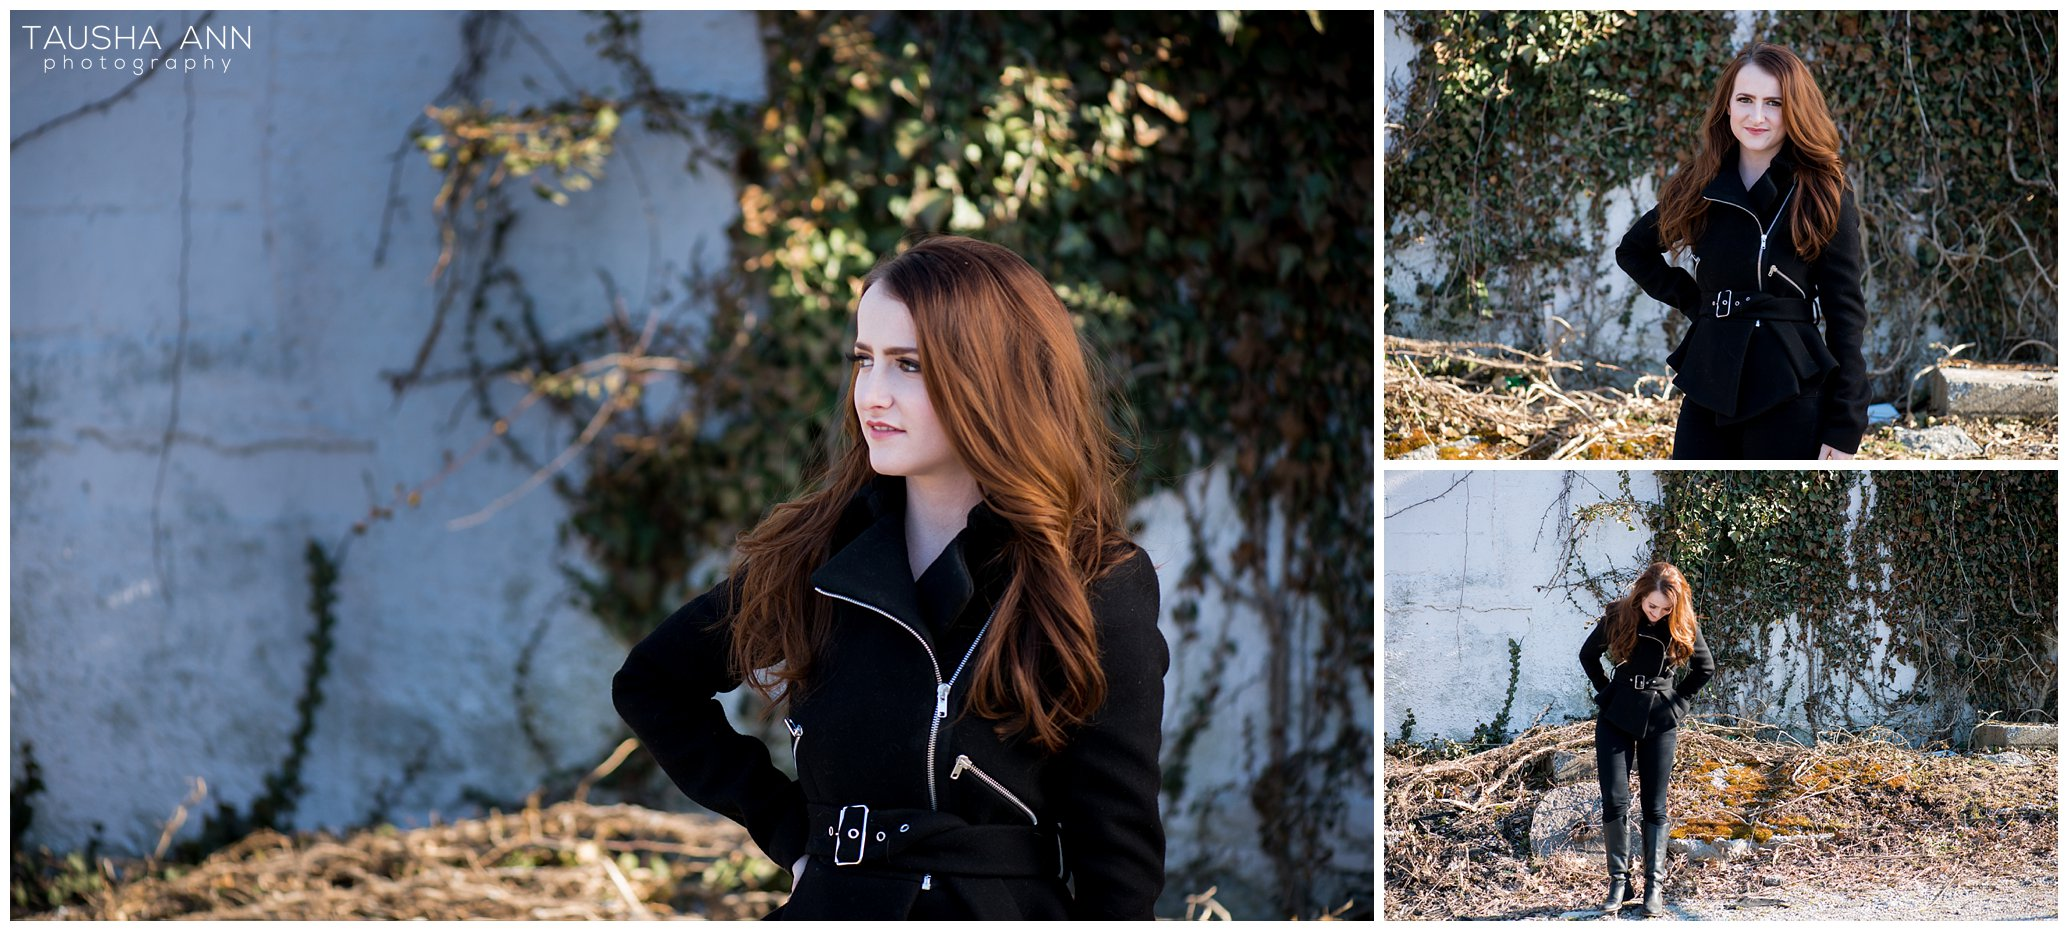 Shannon_Grace_Nashville_TN_FRanklin_Model_Photography_Headshots_Black_Jacket_Red_hair.jpg